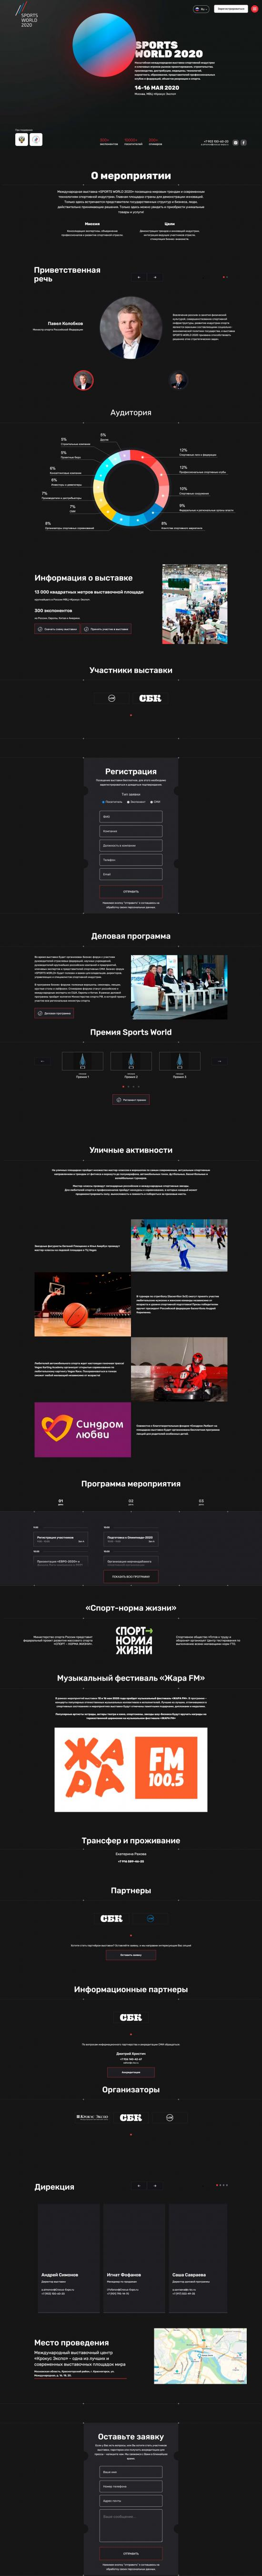 Desktop version of Exhibition and conference Sports World 2020